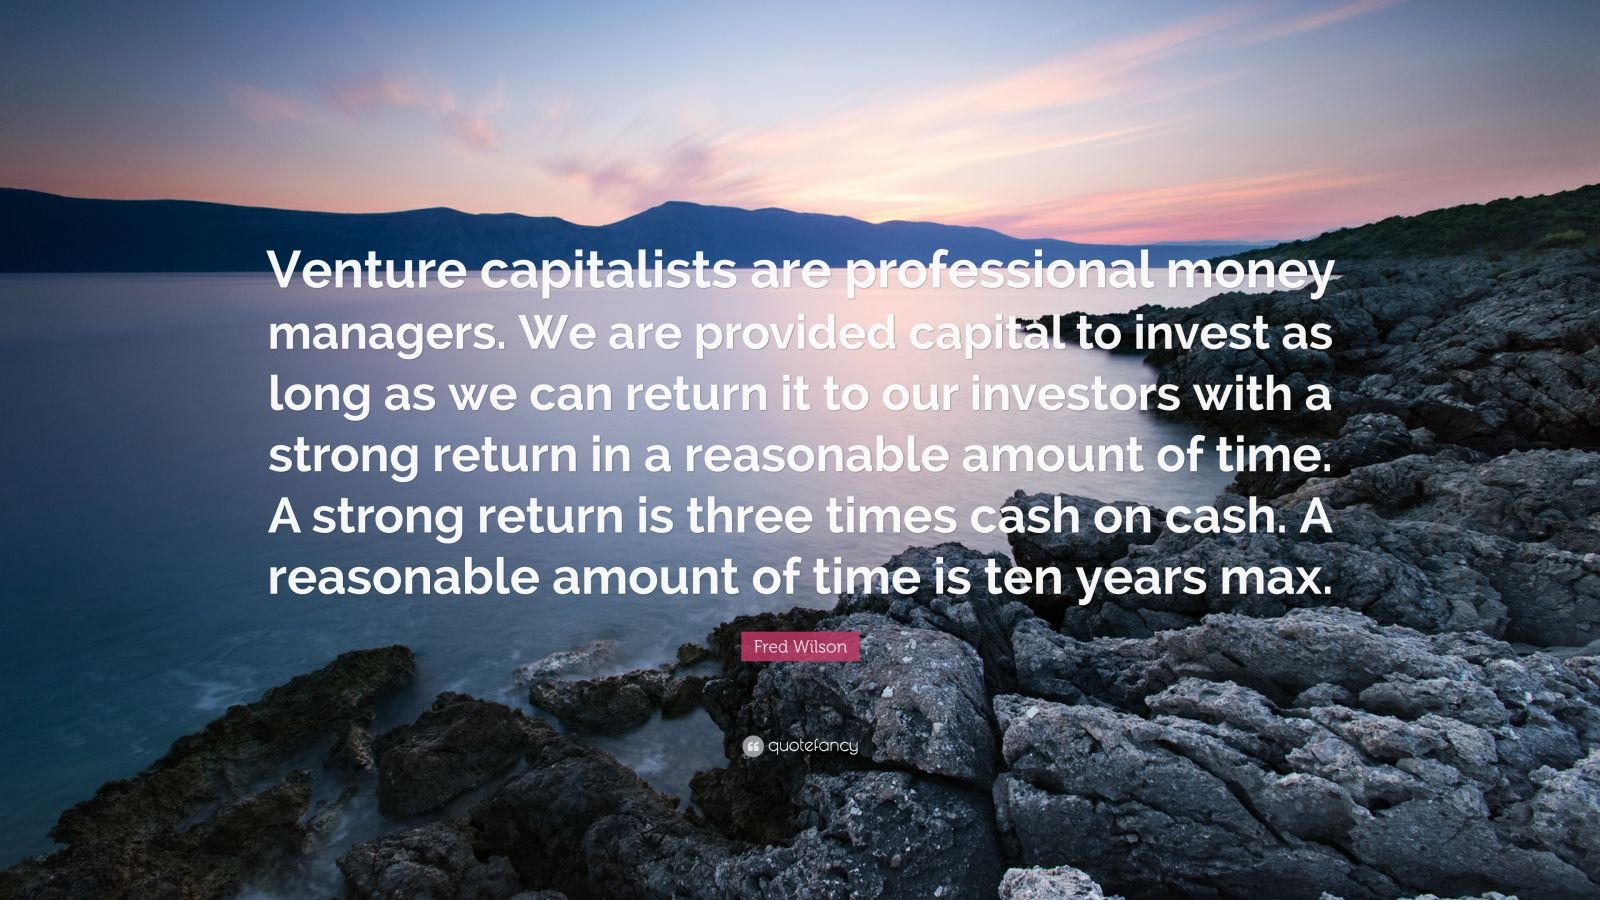 """Fred Wilson Quote: """"Venture capitalists are professional money managers. We are provided capital to invest as long as we can return it to our investors with a strong return in a reasonable amount of time. A strong return is three times cash on cash. A reasonable amount of time is ten years max."""""""